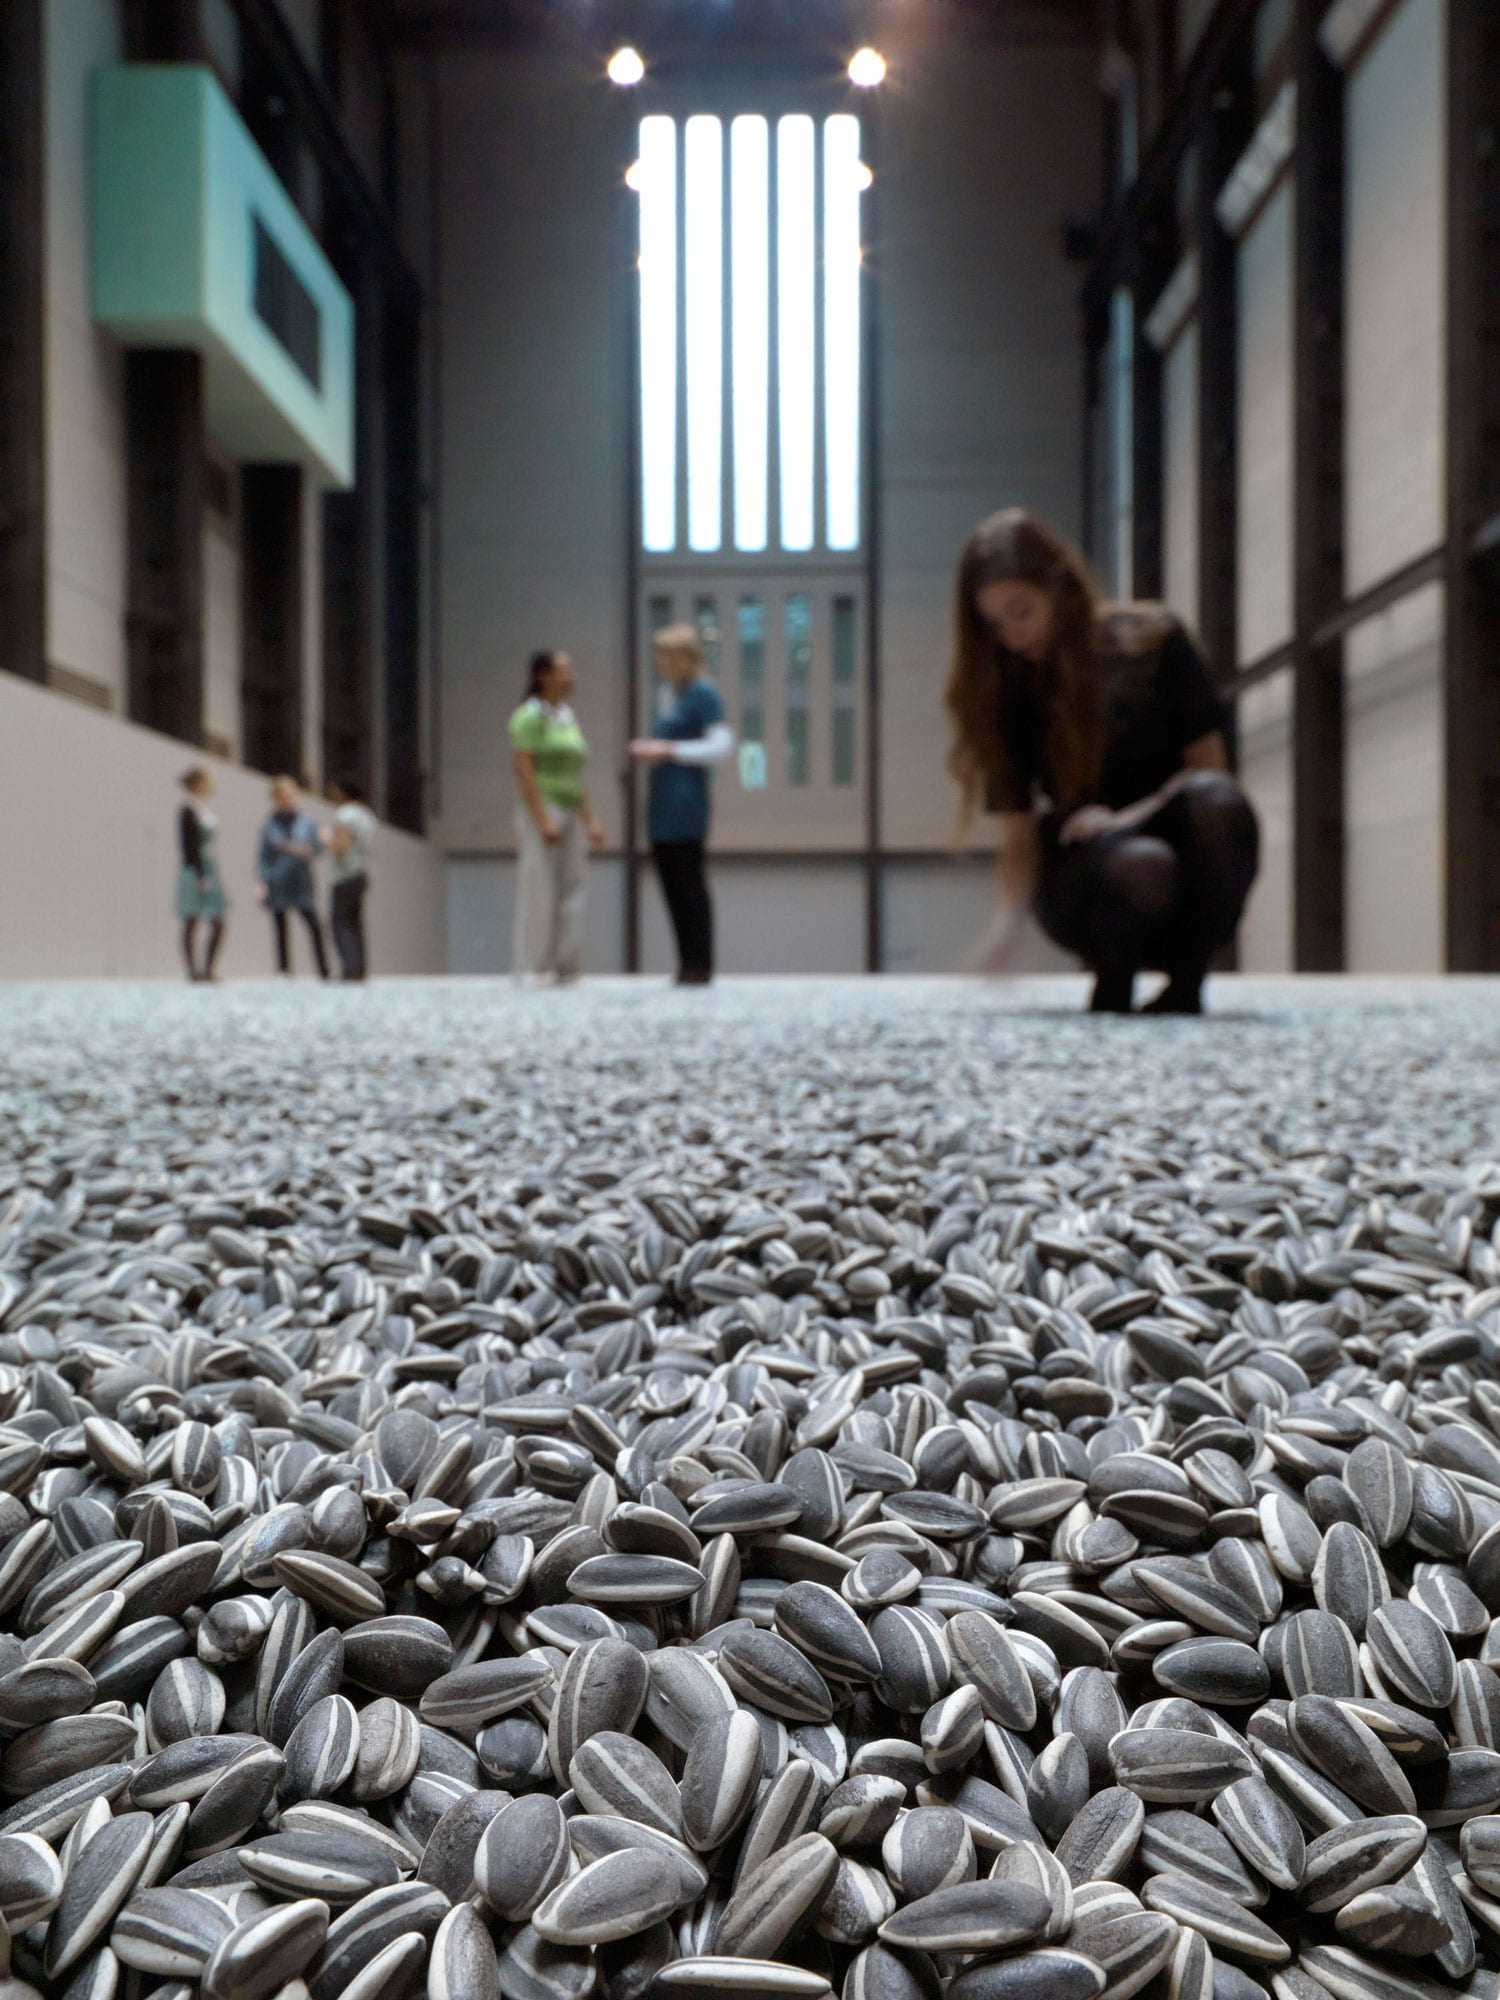 Sunflower Seeds Installation Art by Ai Weiwei | Yellowtrace